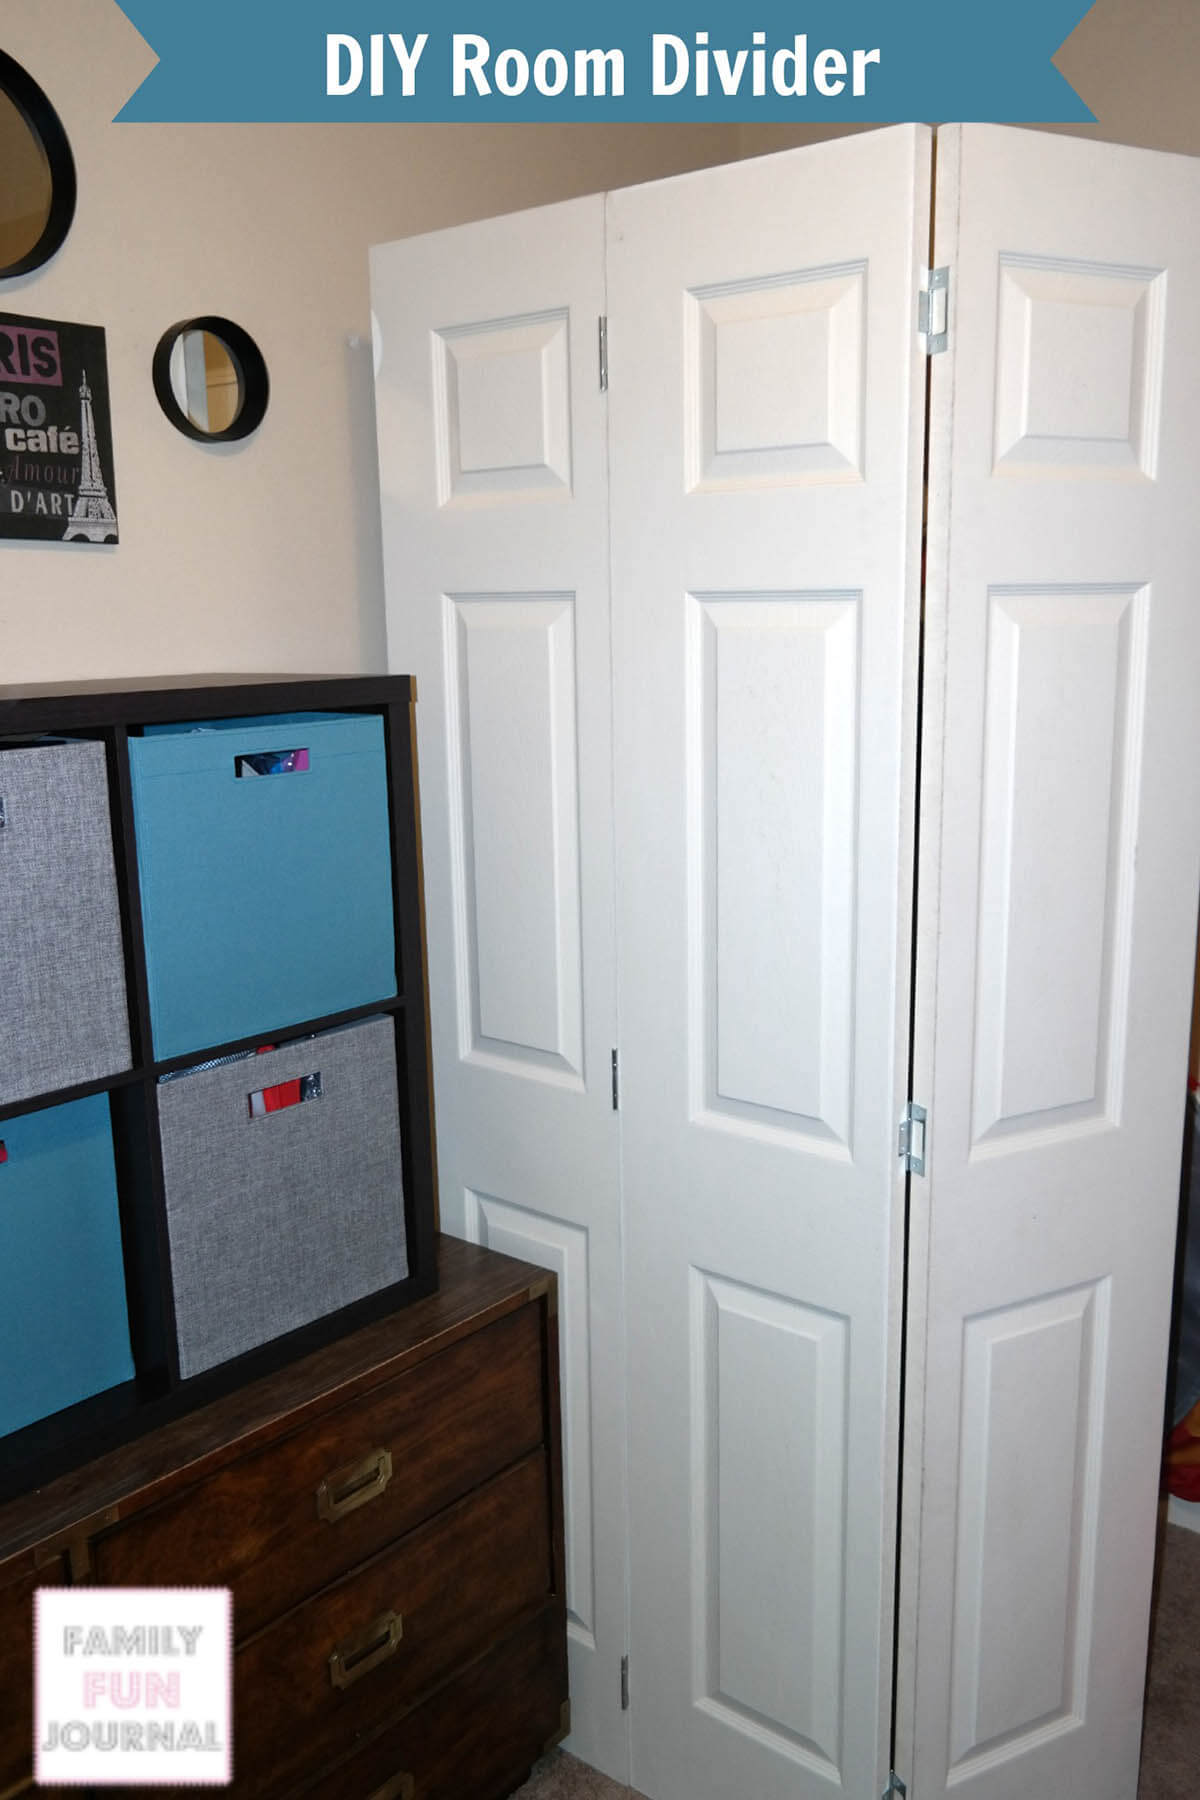 DIY Portable Room Divider Project